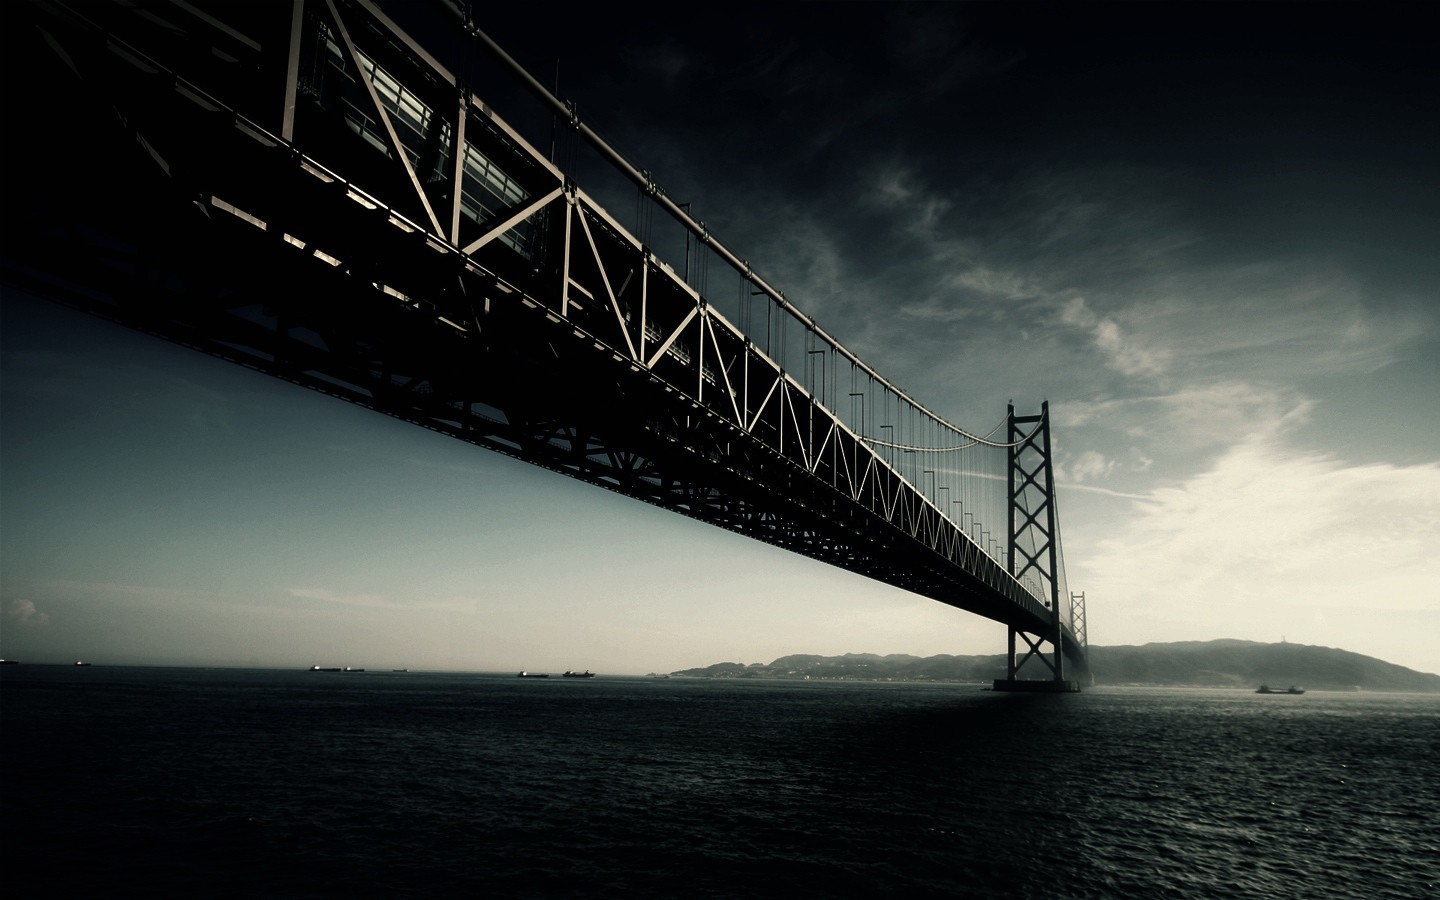 dark Bridges suspension bridge HD Wallpaper